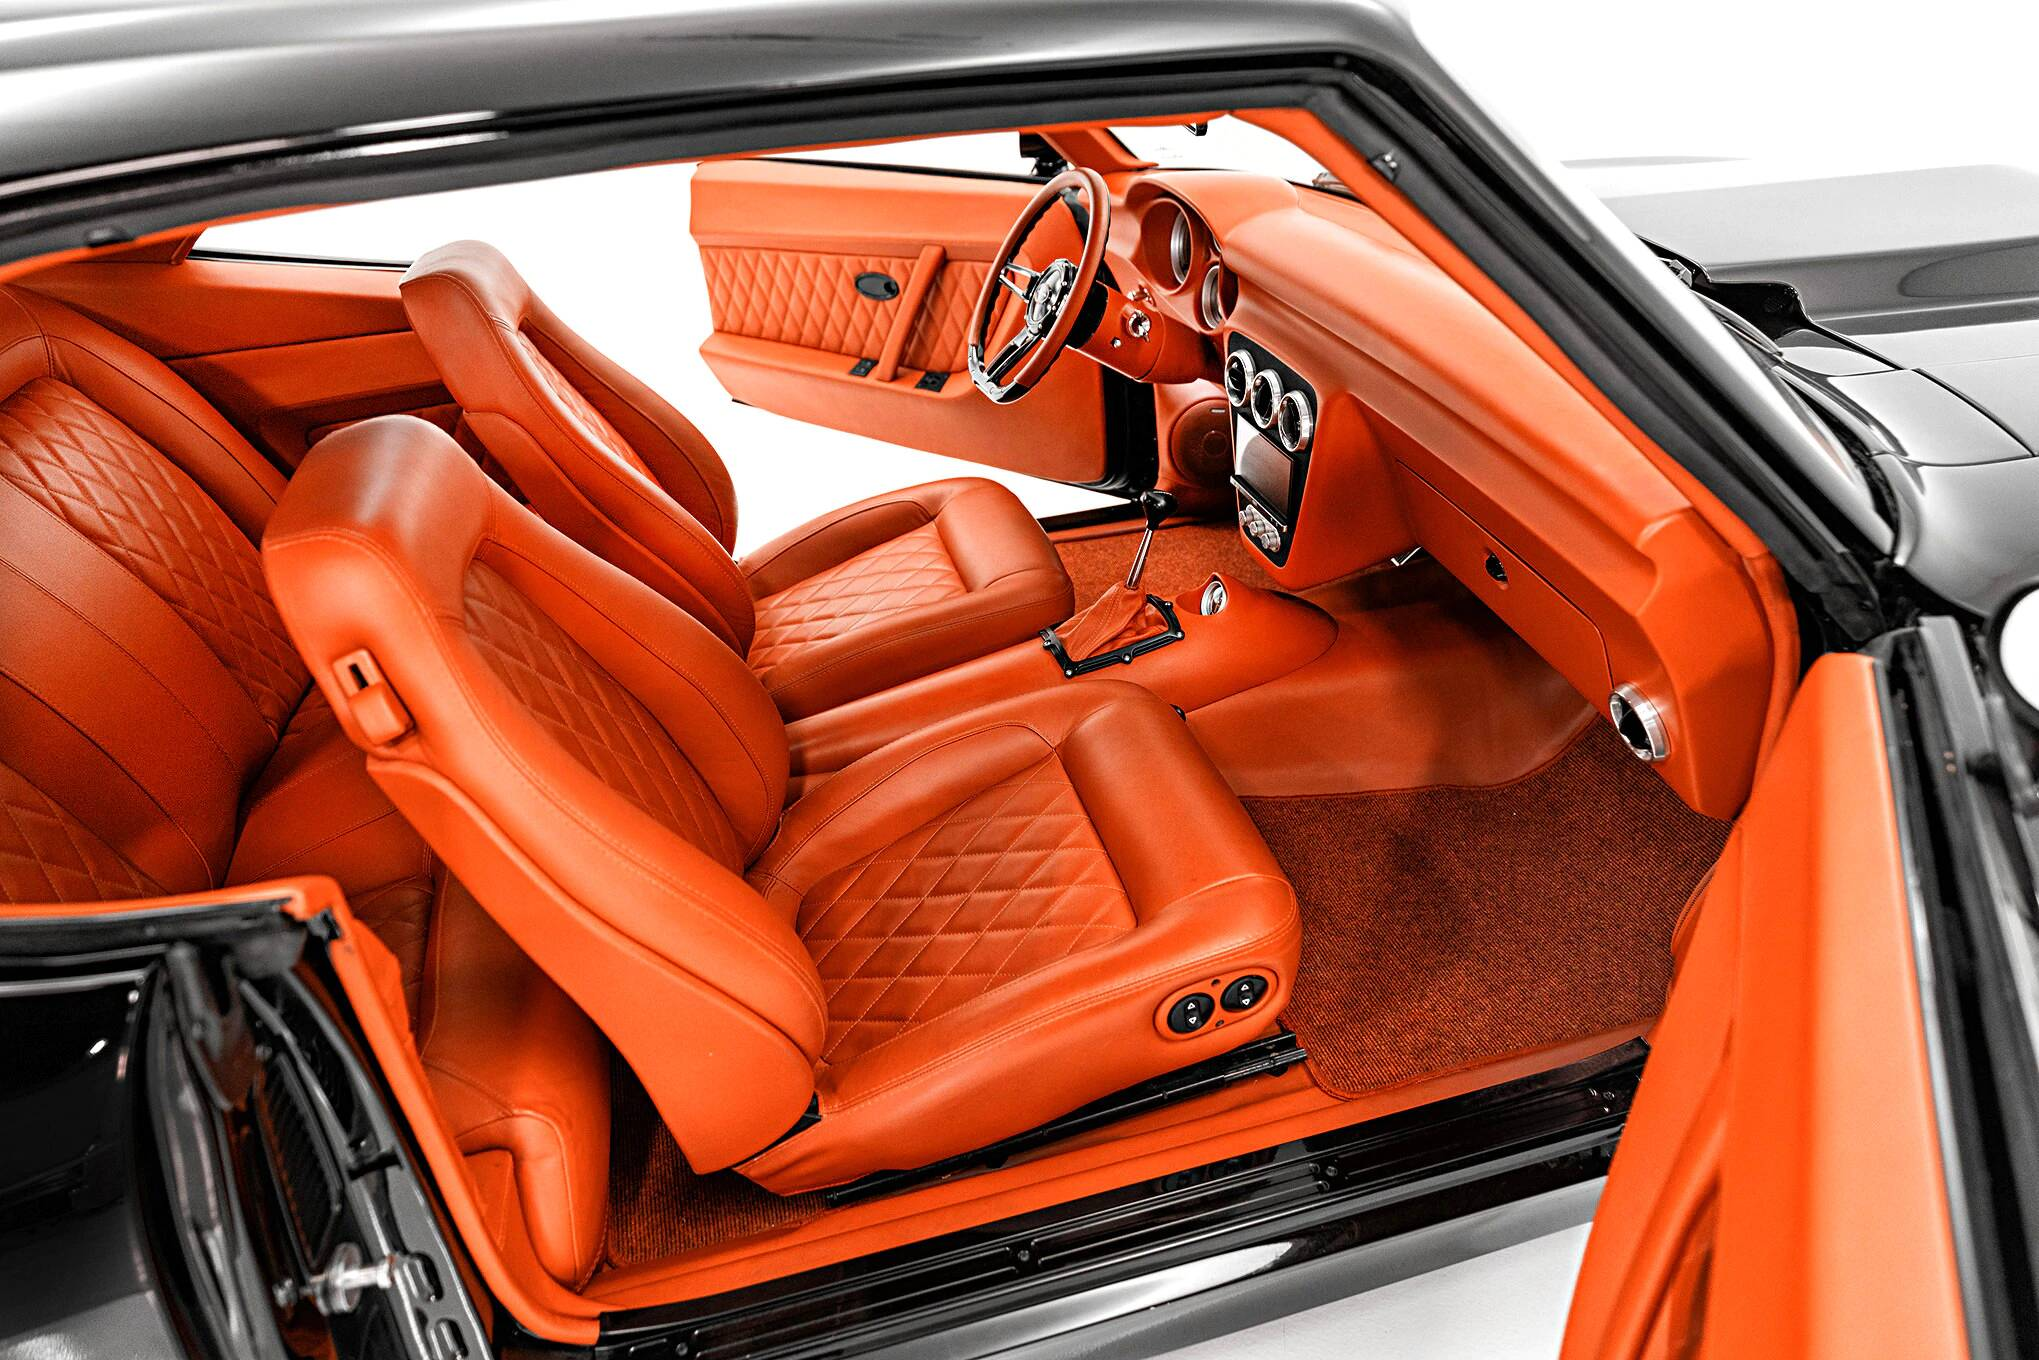 Classic Car Studio Relicate Orange Leather 1969 Camaro interior